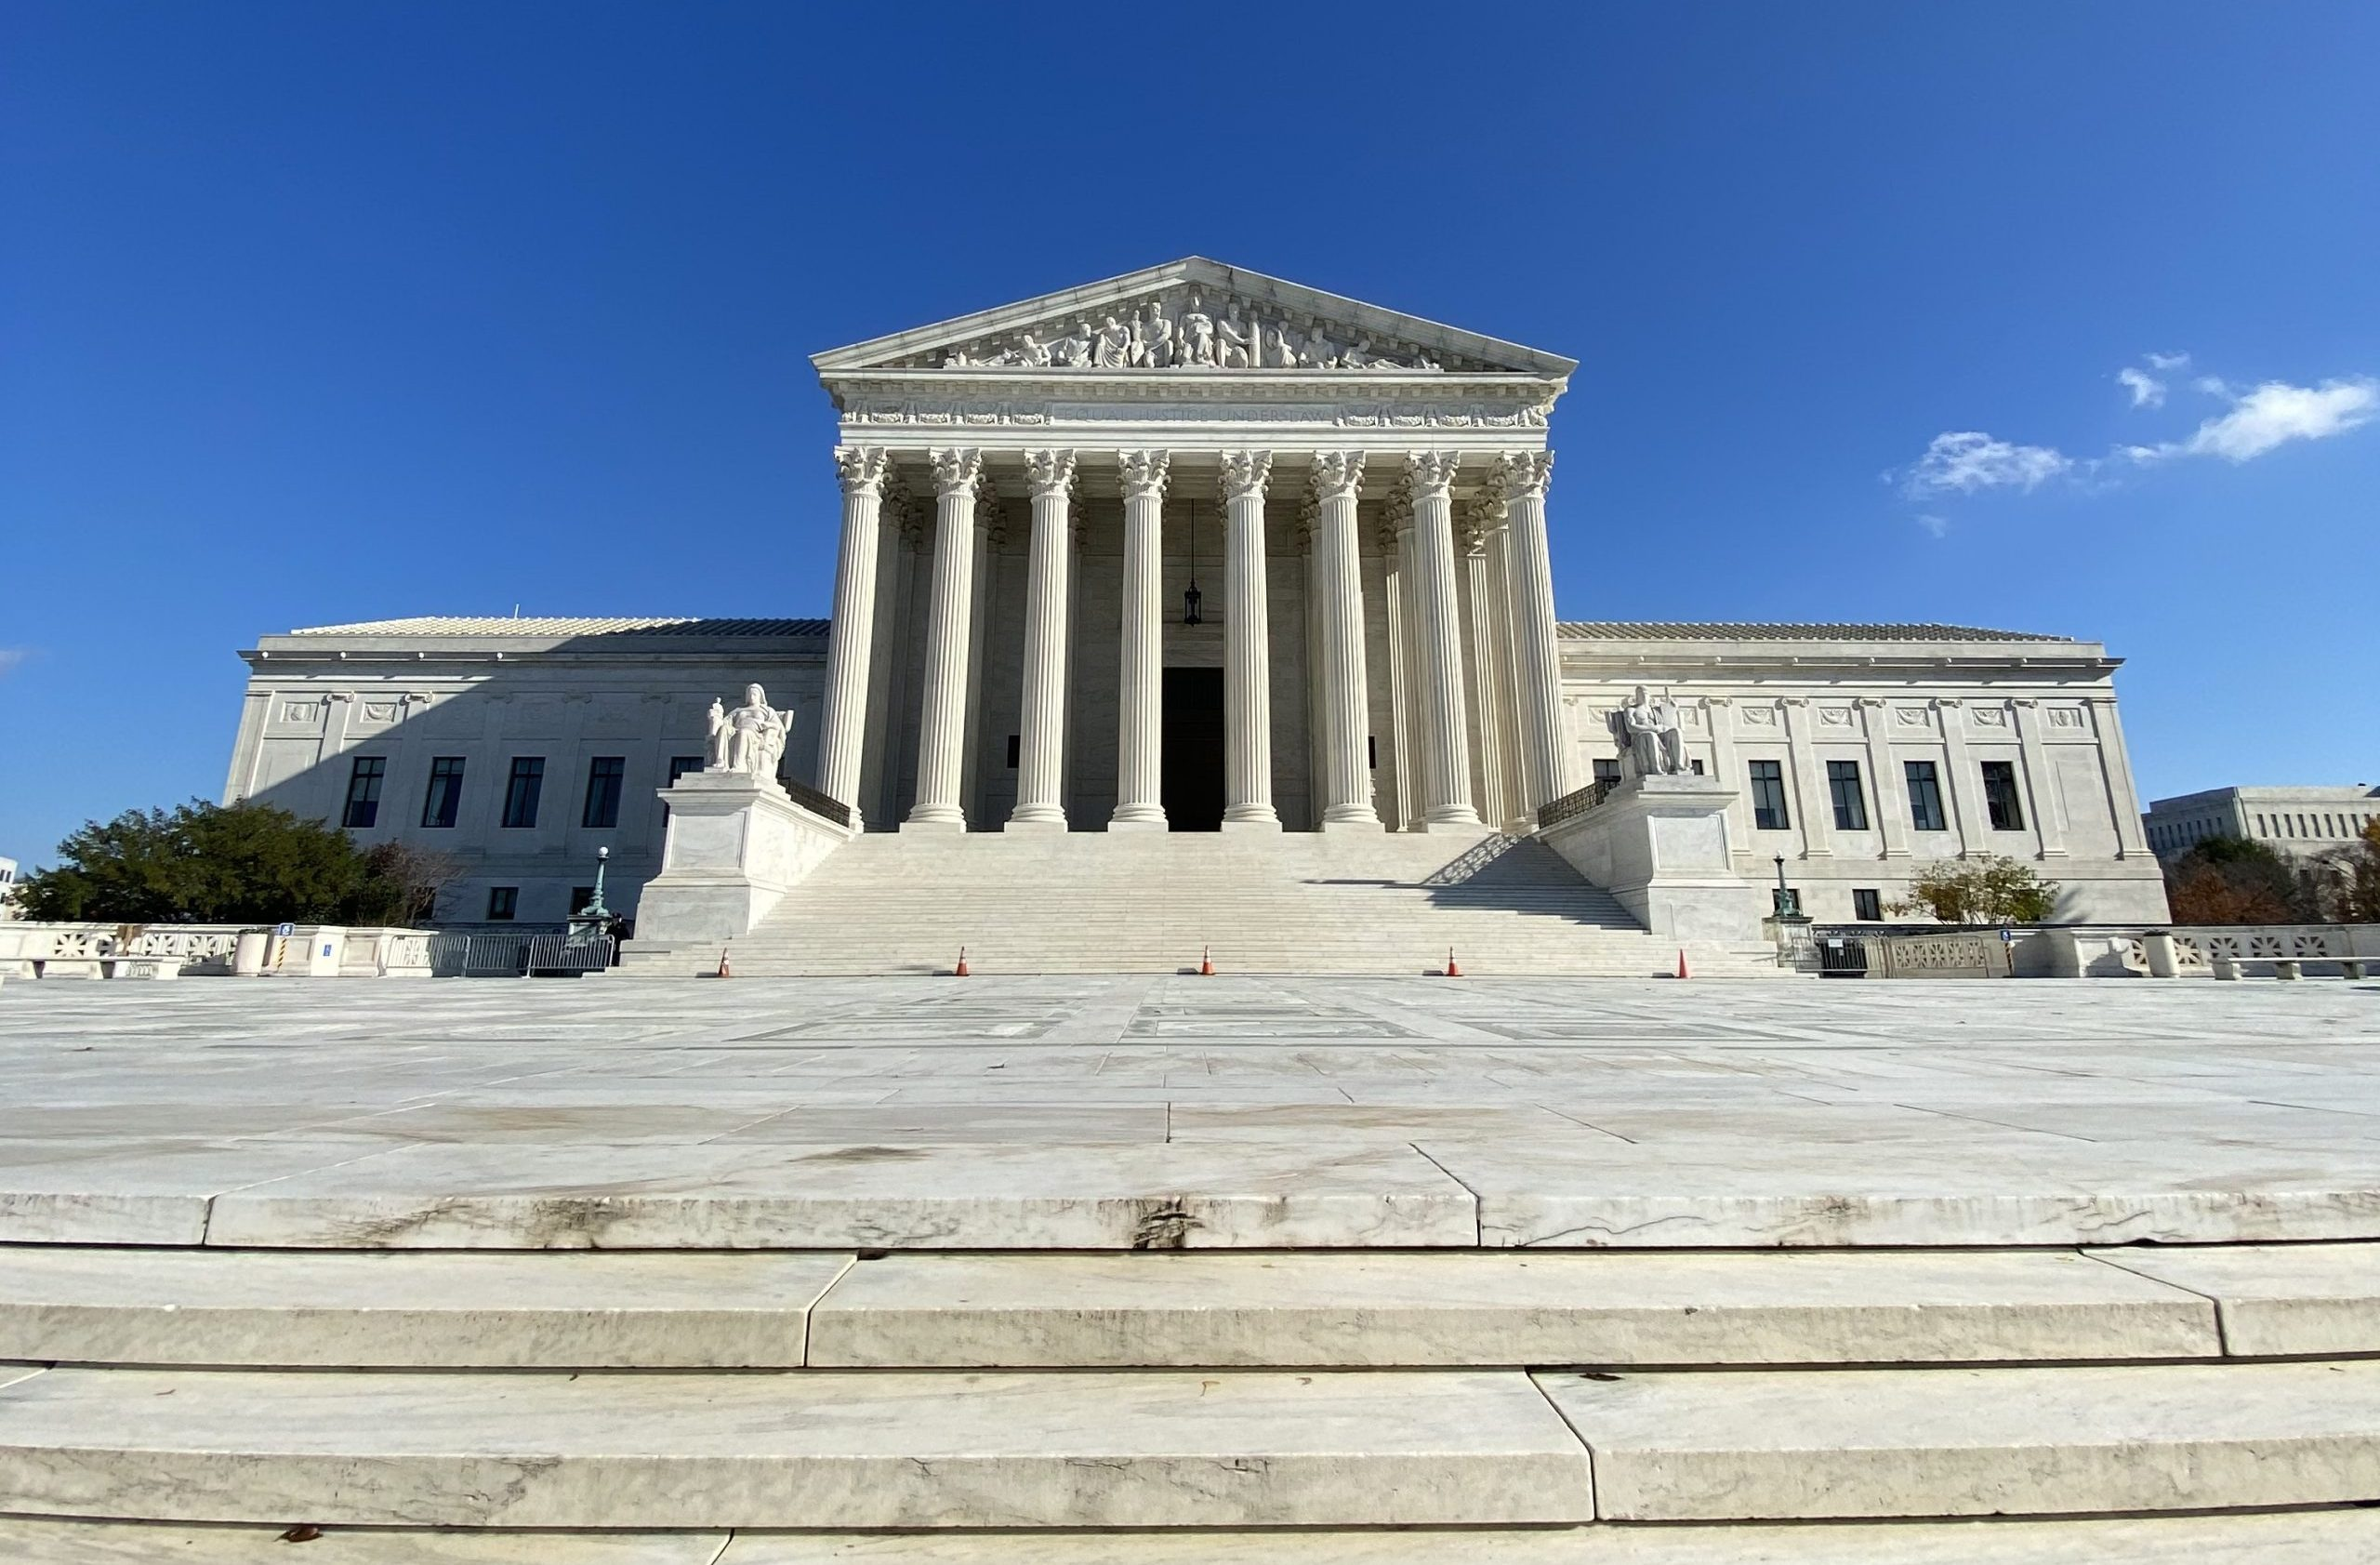 front facade of Supreme Court against blue sky